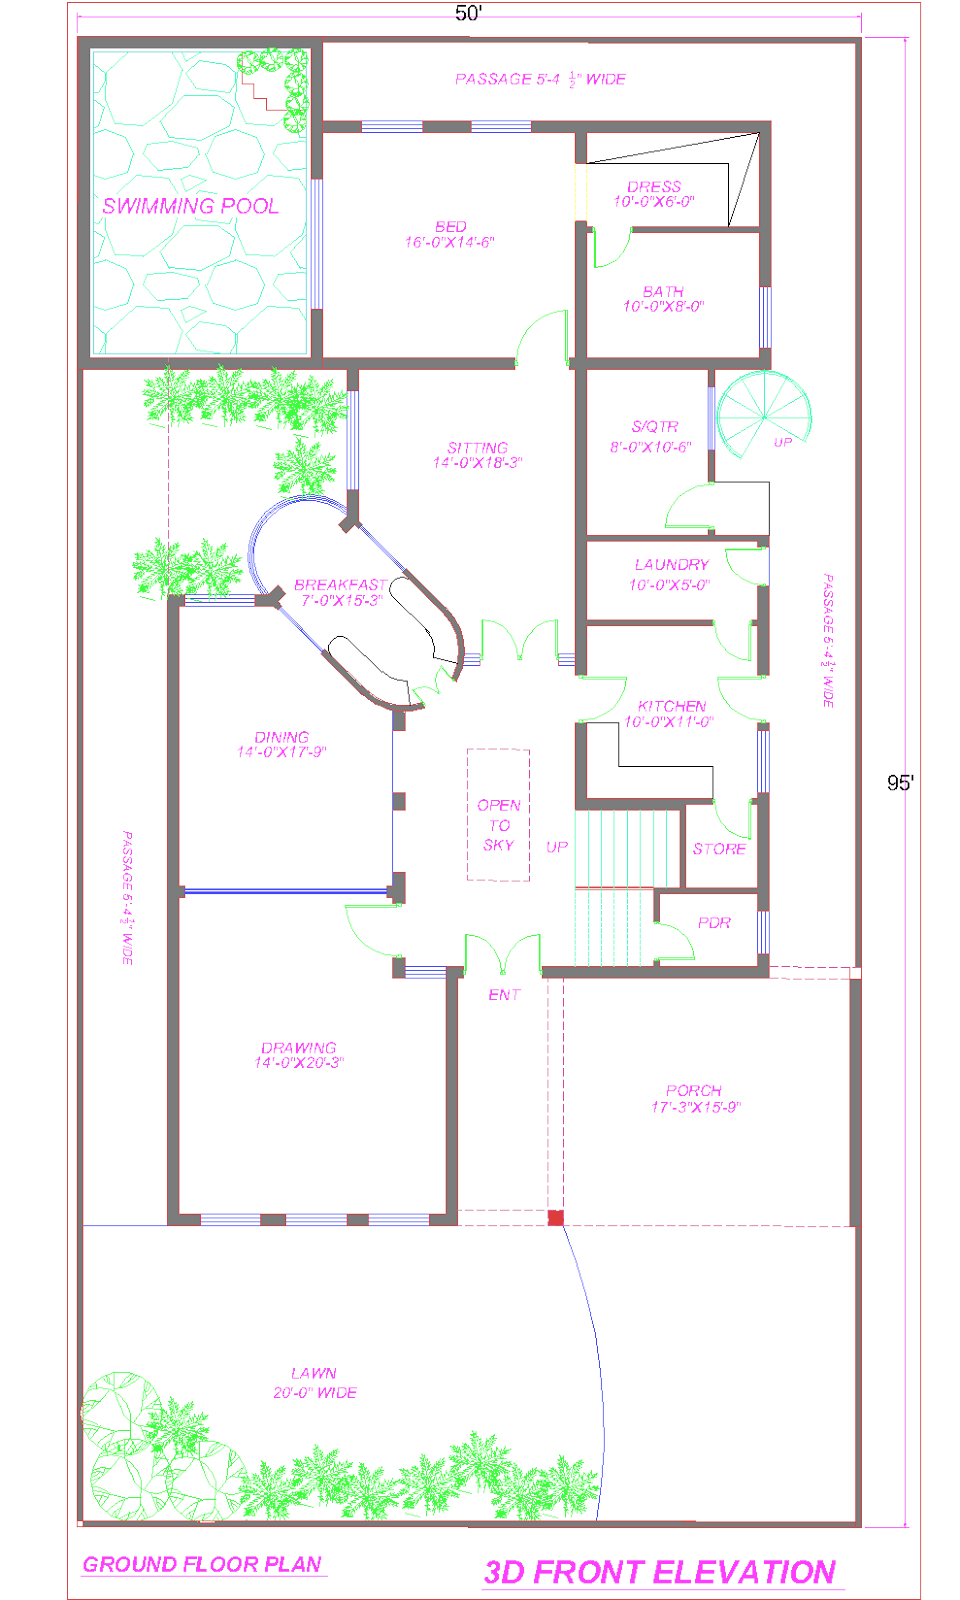 3d front 1 kanal house plan with swimming for Swimming pool plan layout